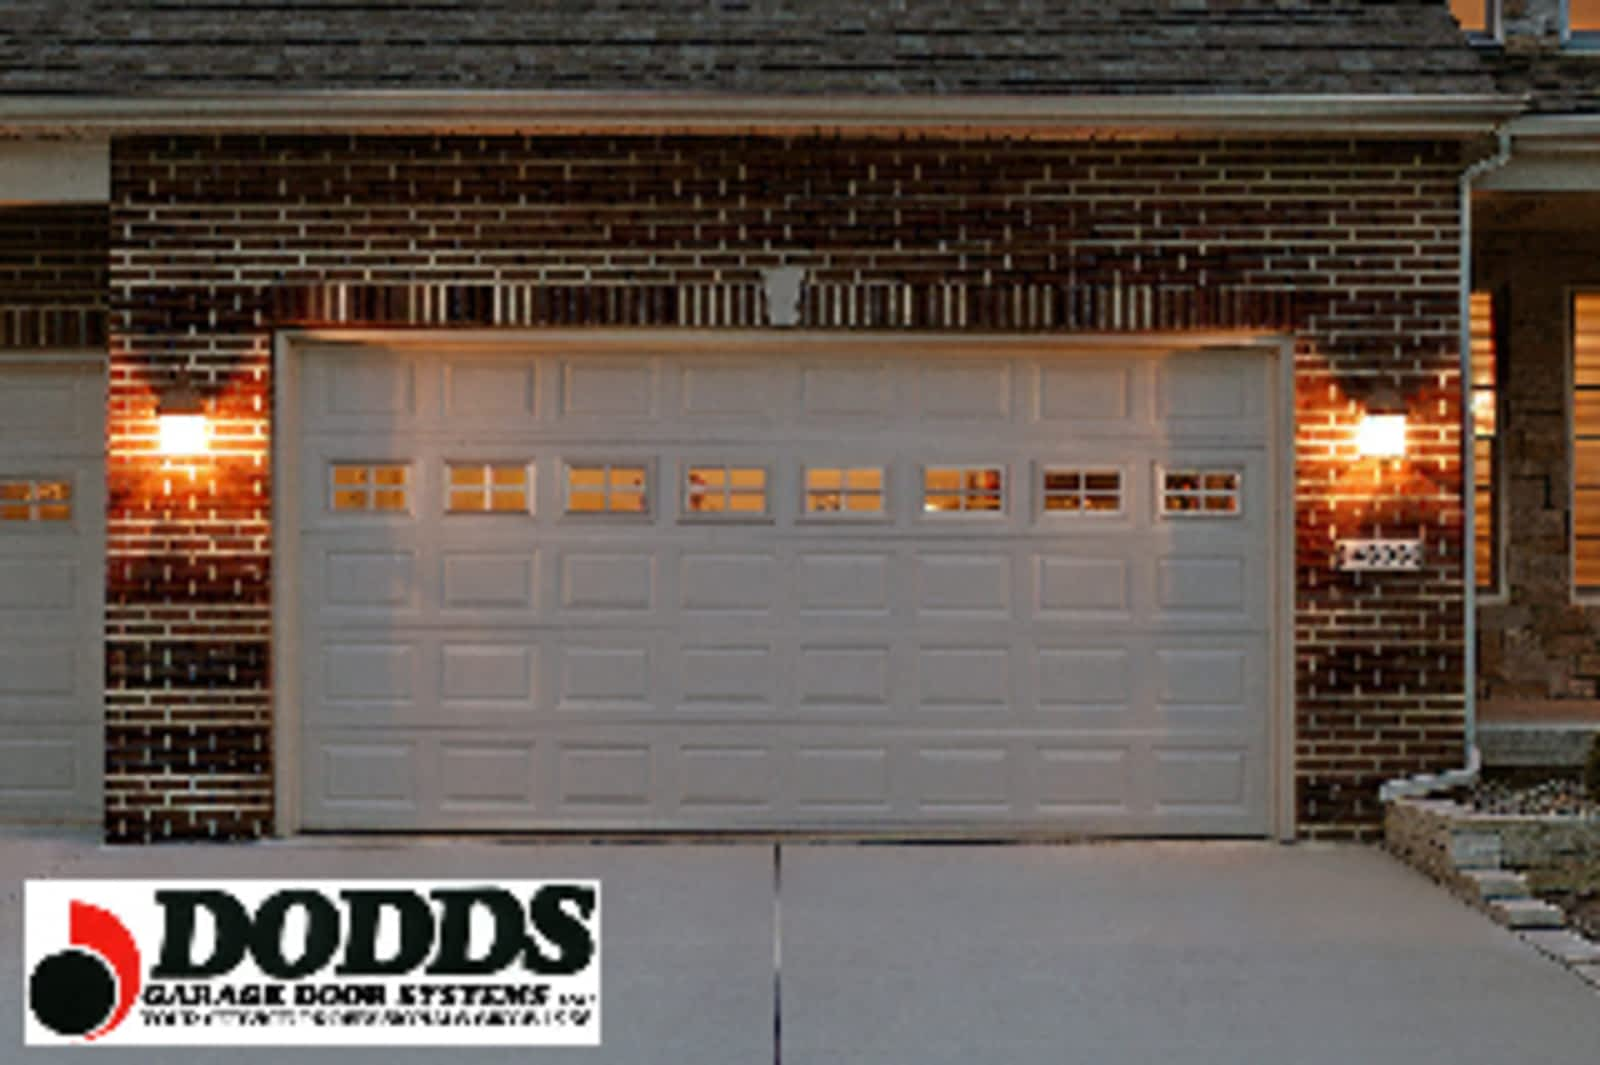 Dodds Garage Door Systems Inc - Opening Hours - 346 Newkirk Rd Richmond Hill ON : dodds doors - pezcame.com